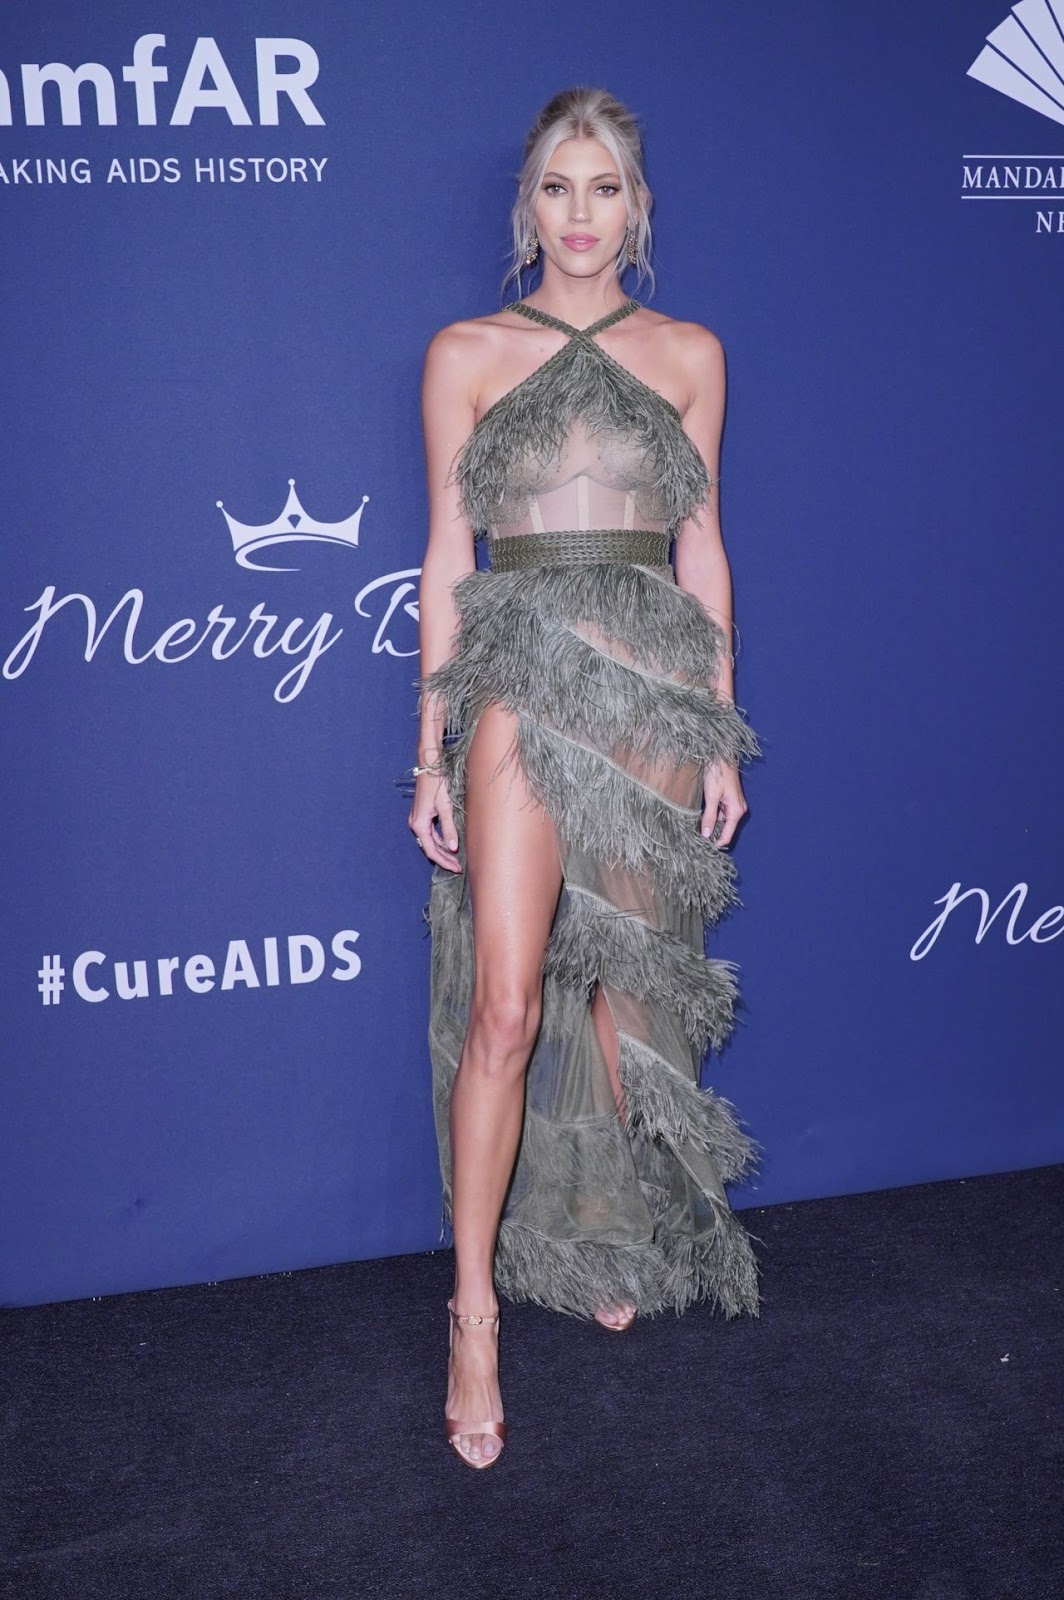 Devon Windsor arrives in sheer feathered gown to the amfAR 2020 New York Gala